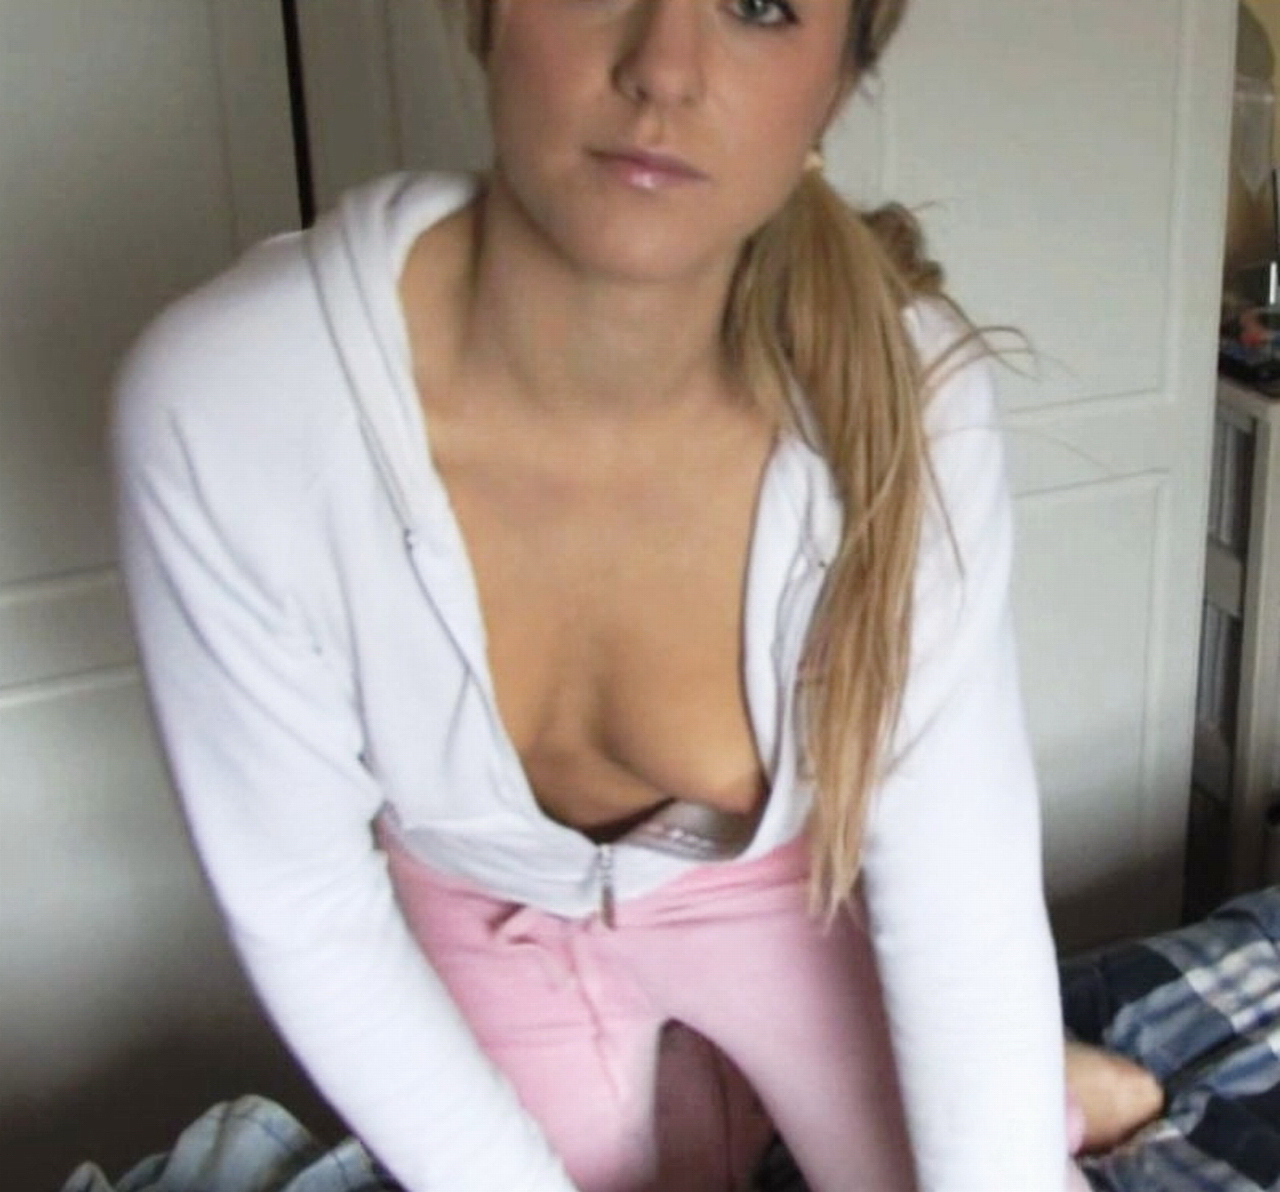 Downblouse girl